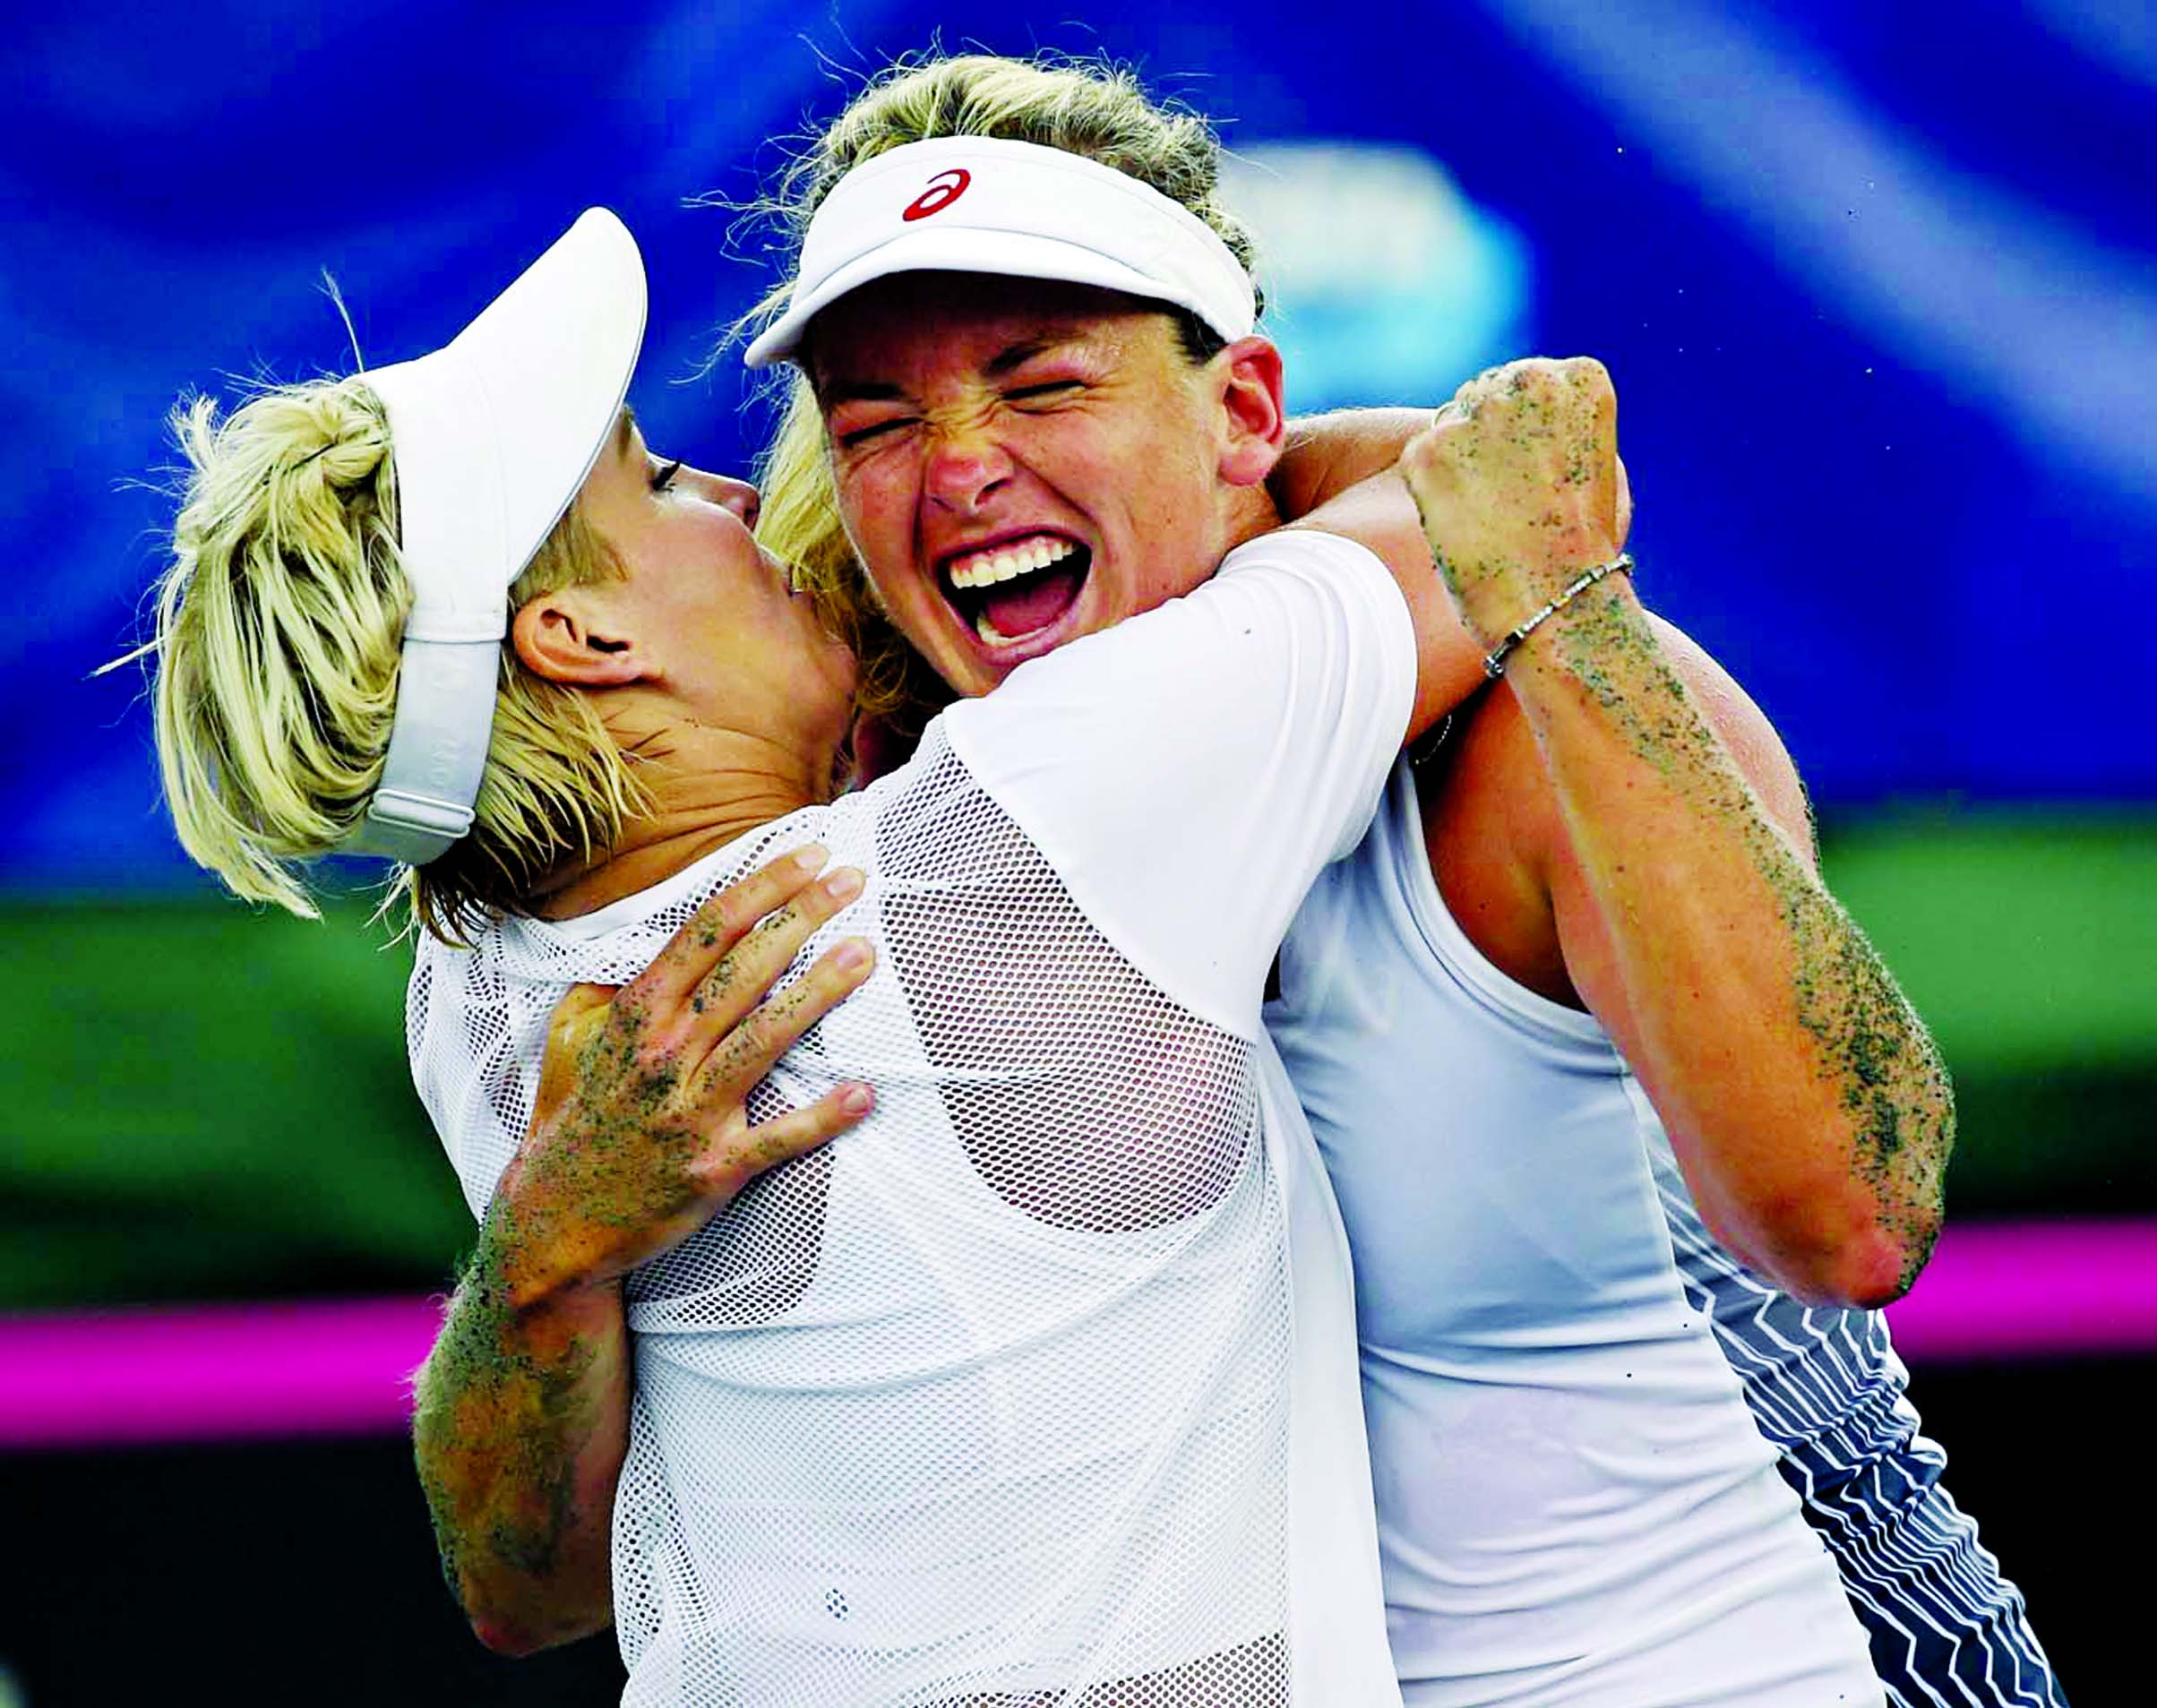 United States team players Bethanie Mattek-Sands (left) and CoCo Vandeweghe celebrate after defeating Czech Republic players Kristyna Pliskova and Katerina Siniakova during a Fed Cup semifinal doubles tennis match in Wesley Chapel, Fla on Sunday.